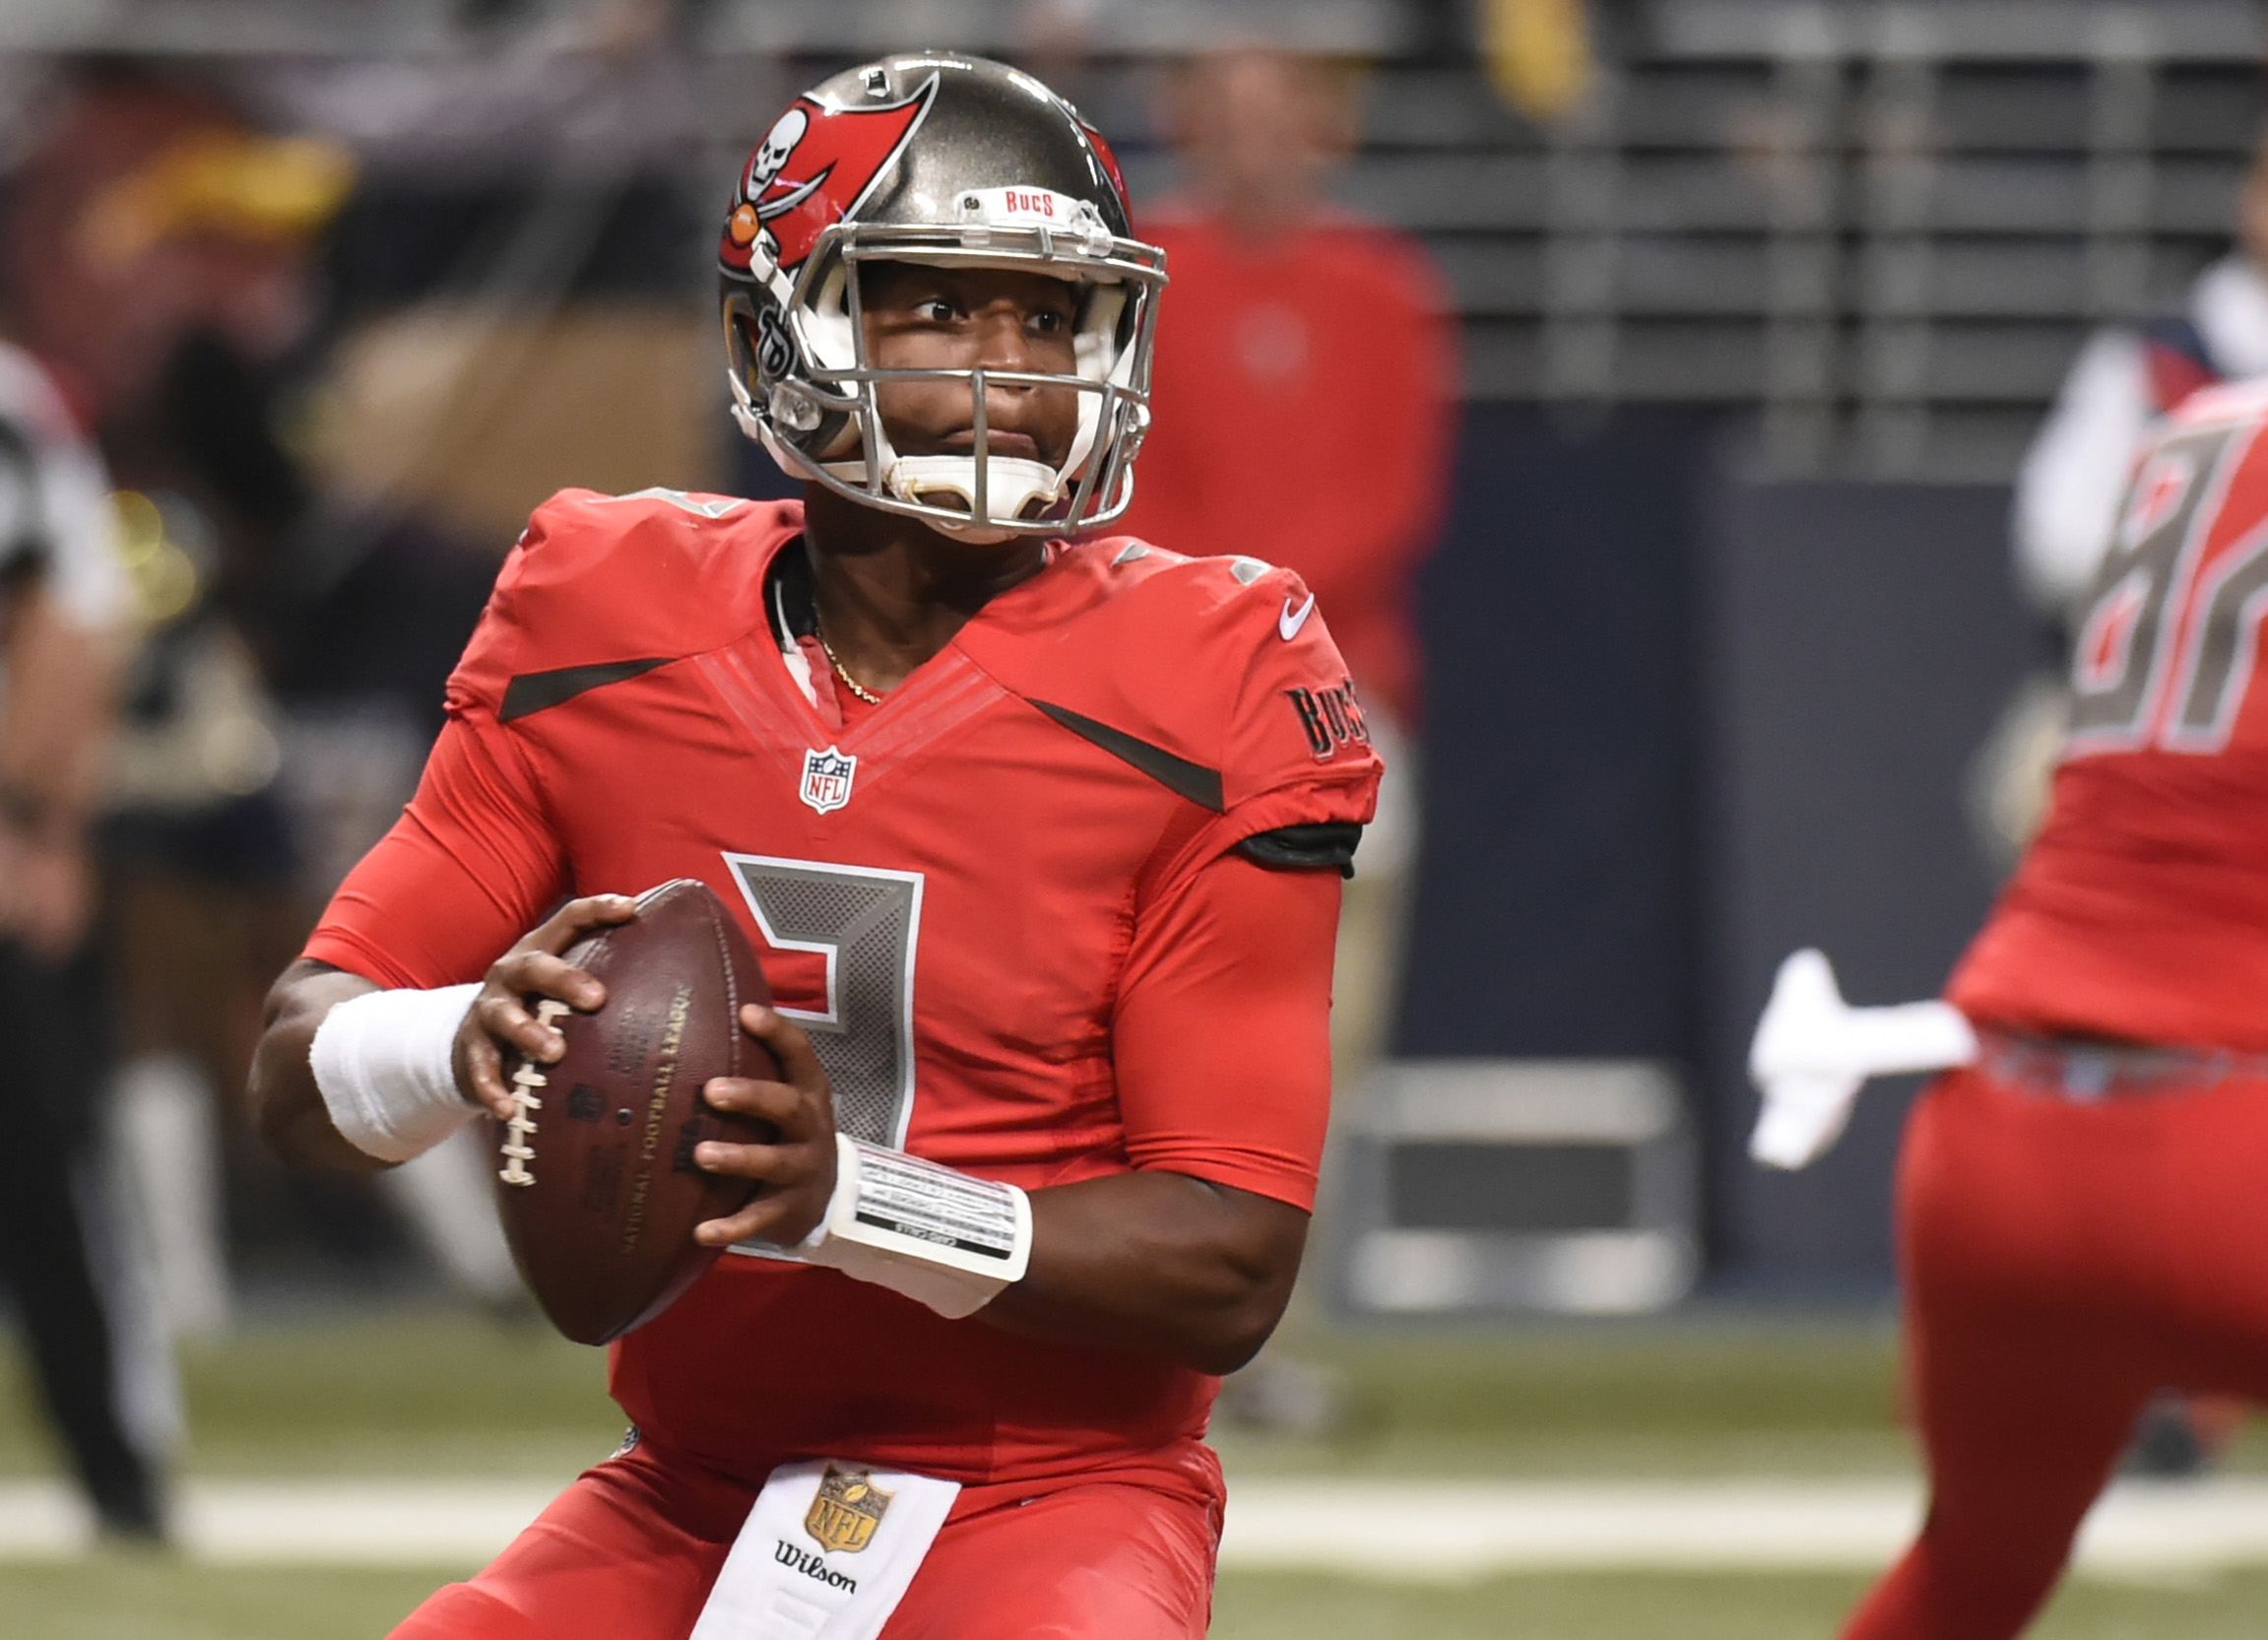 FILE - In this Dec. 17, 2015, file photo, Tampa Bay Buccaneers quarterback Jameis Winston drops back to pass during the second quarter of an NFL football game against the St. Louis Rams in St. Louis. Winston will finish his rookie season doing something t